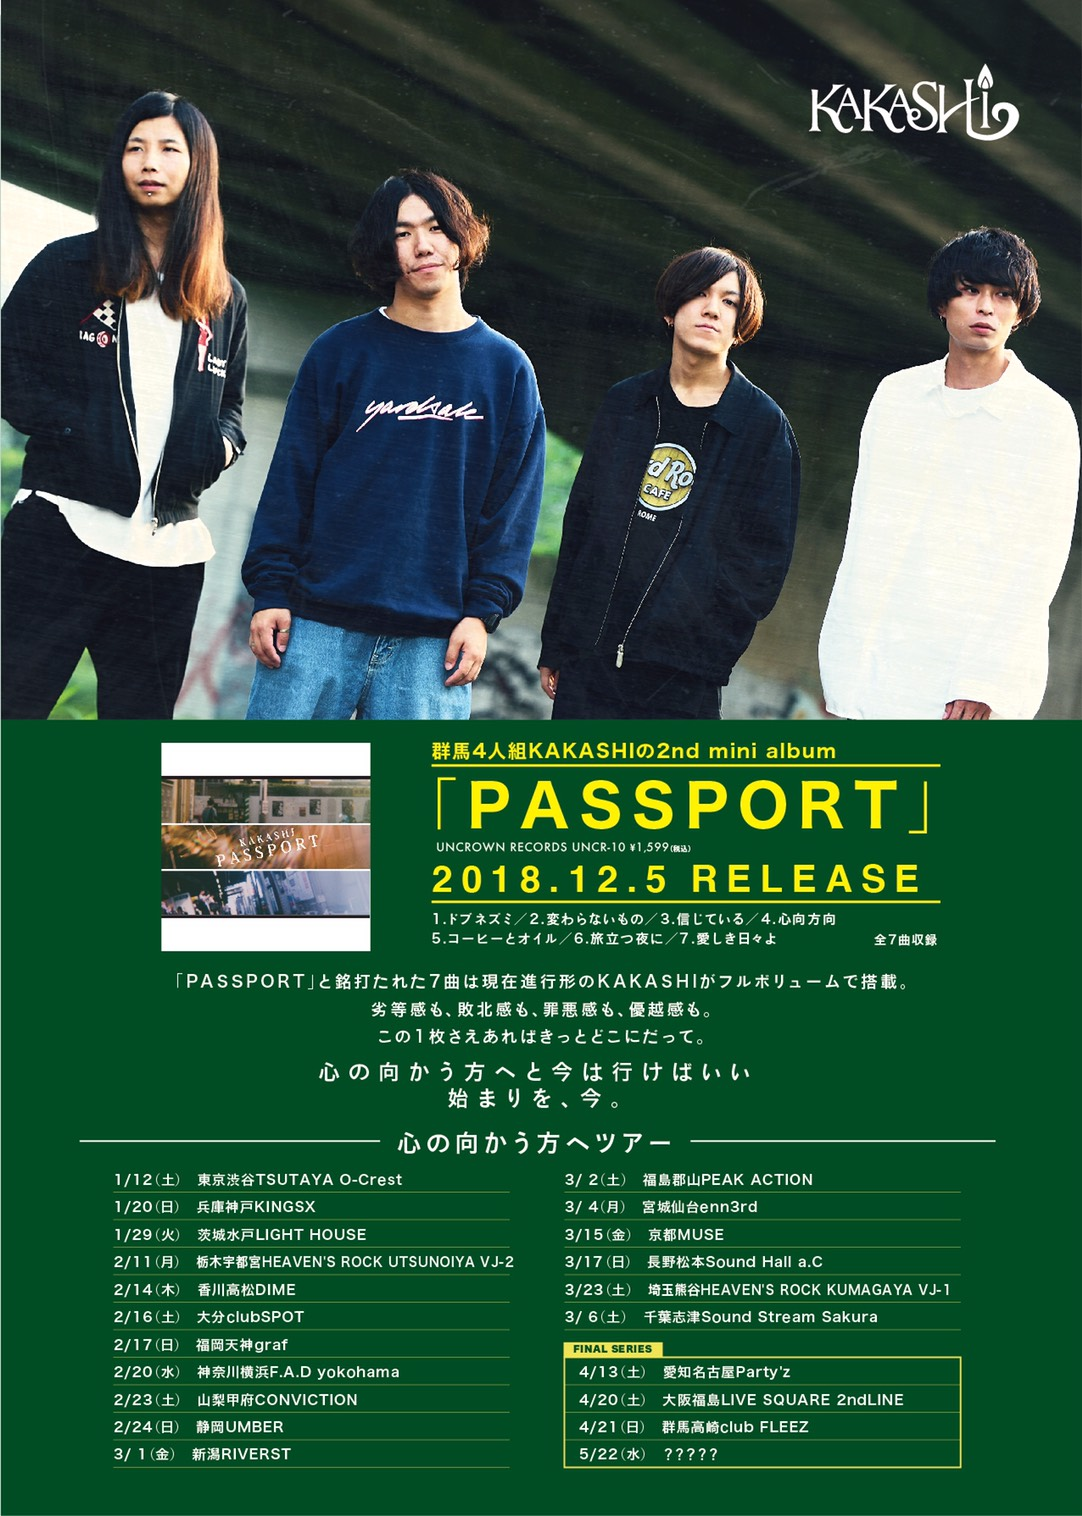 KAKASHI 2nd mini album「PASSPORT」release tour 【心の向かう方へツアー】